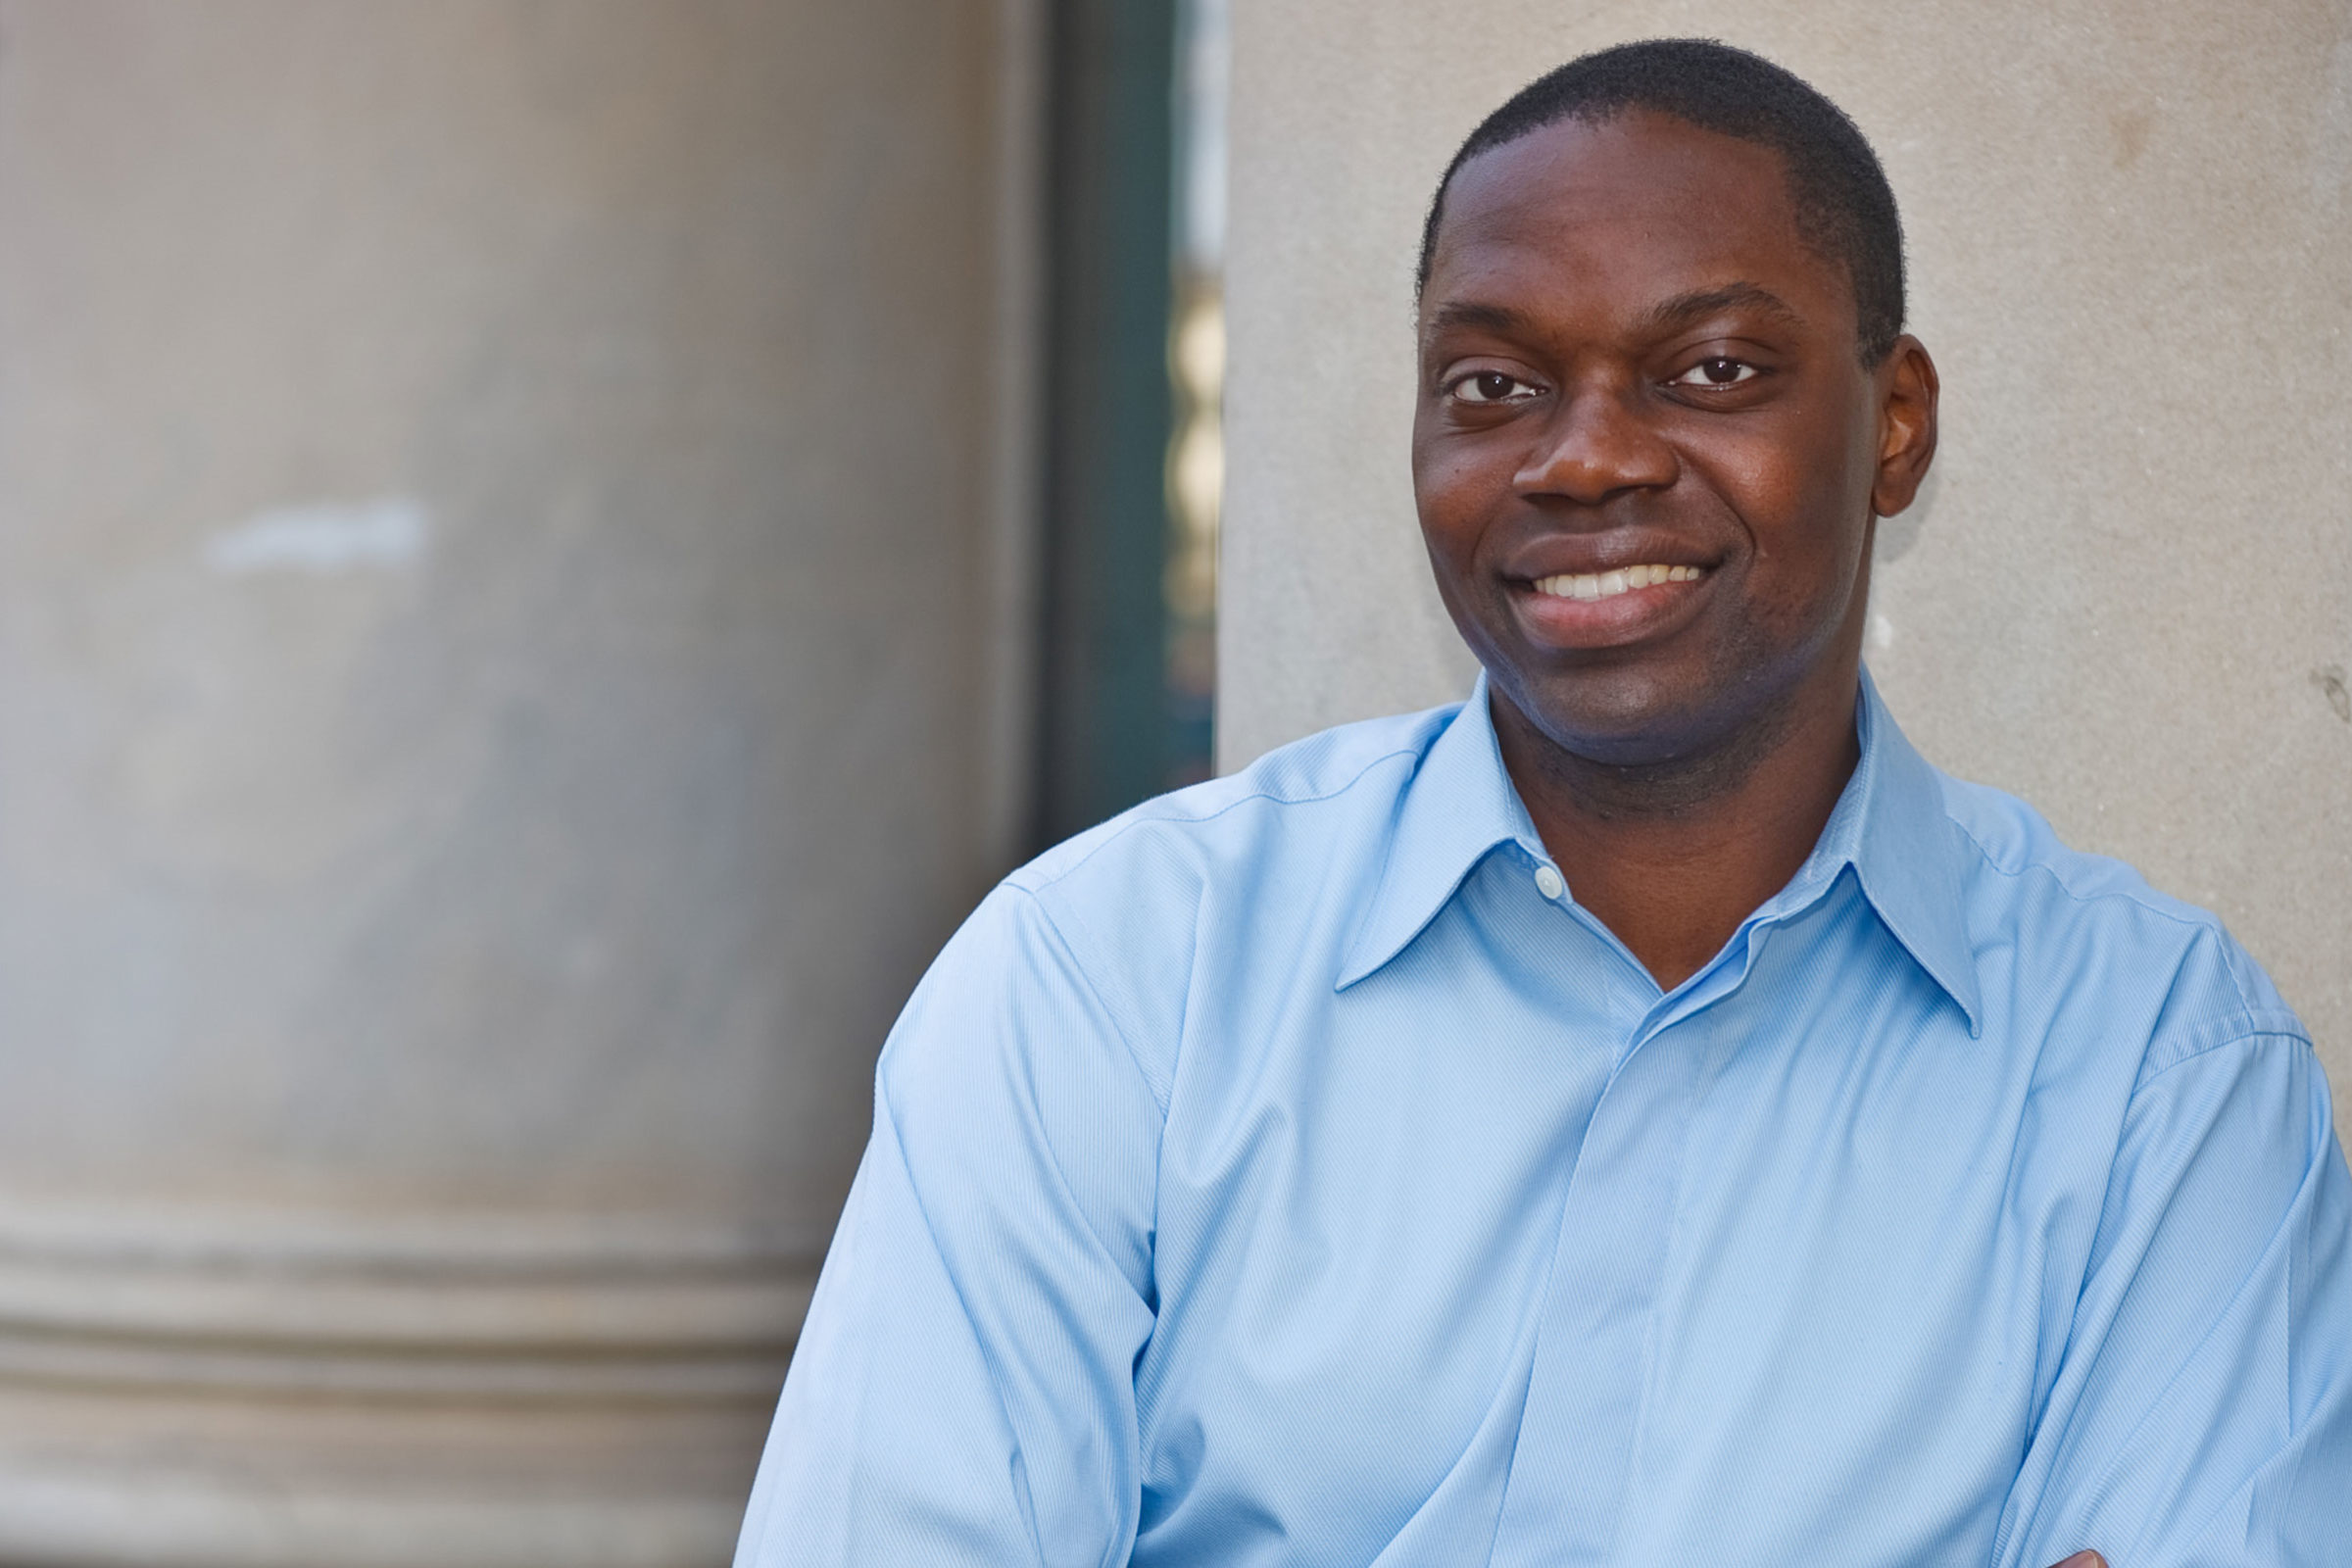 Garlin Gilchrist poses for a photo